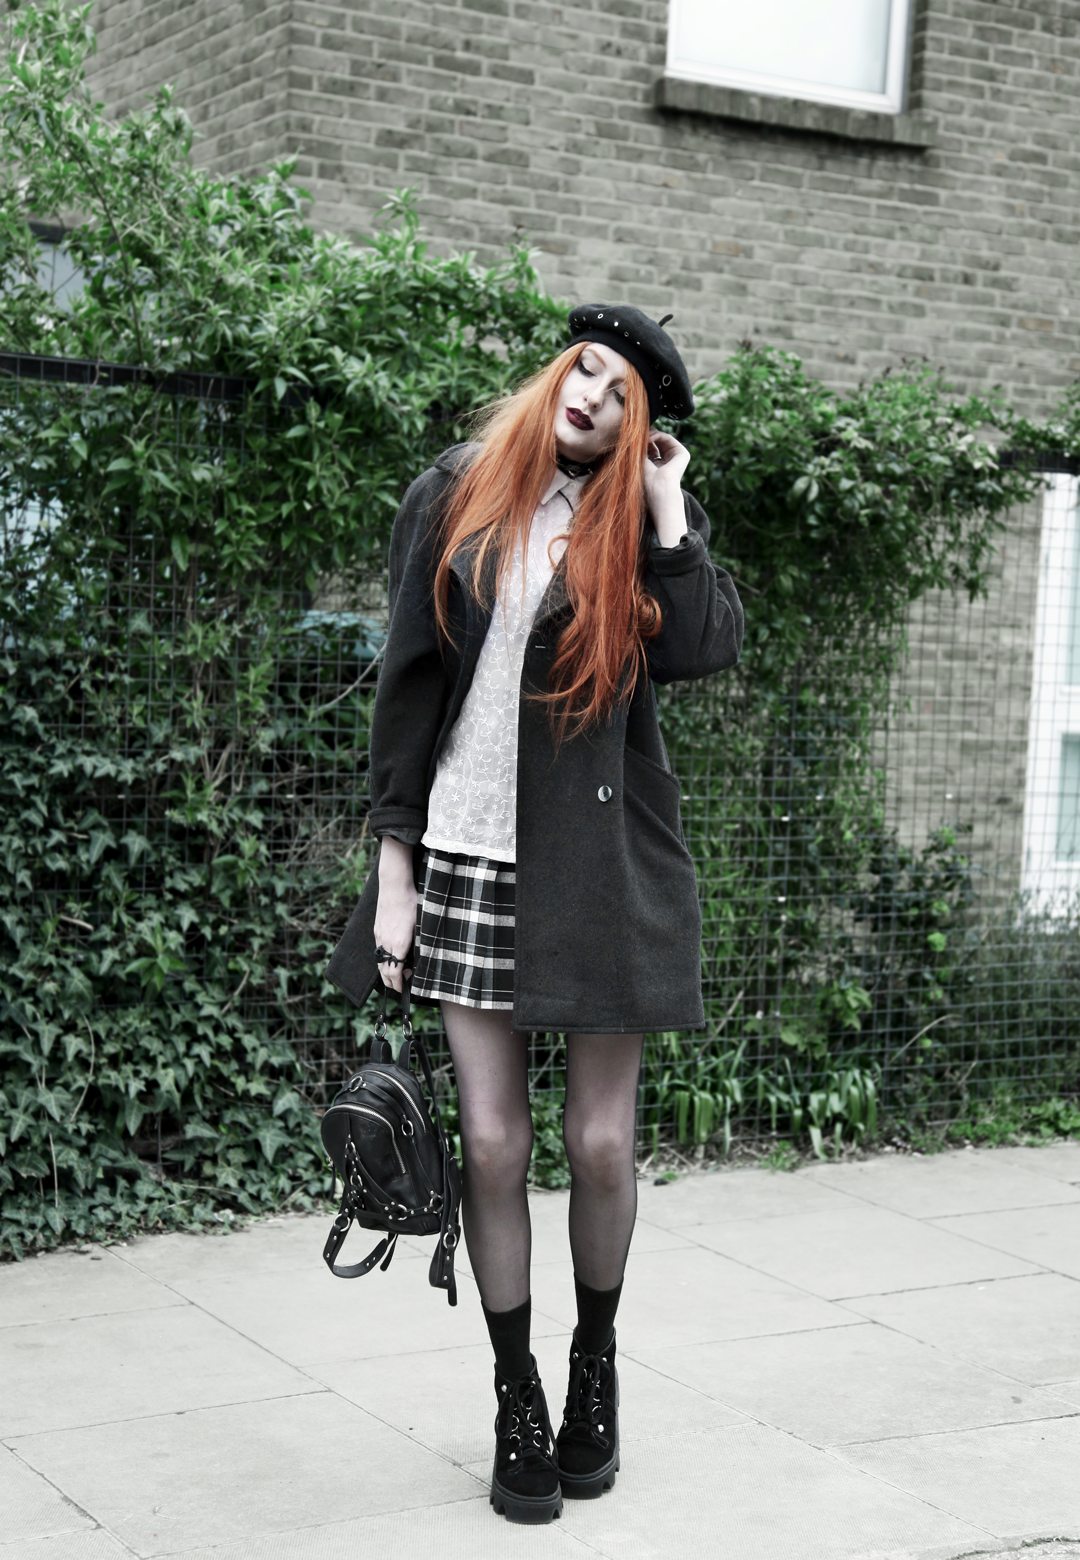 Olivia Emily wears Asos Eyelet Beret, Seconhand Coat & Blouse, Asos x Le Kilt collab plaid skirt, unif bound mini backpack, Underground Jungle Evolution Boots